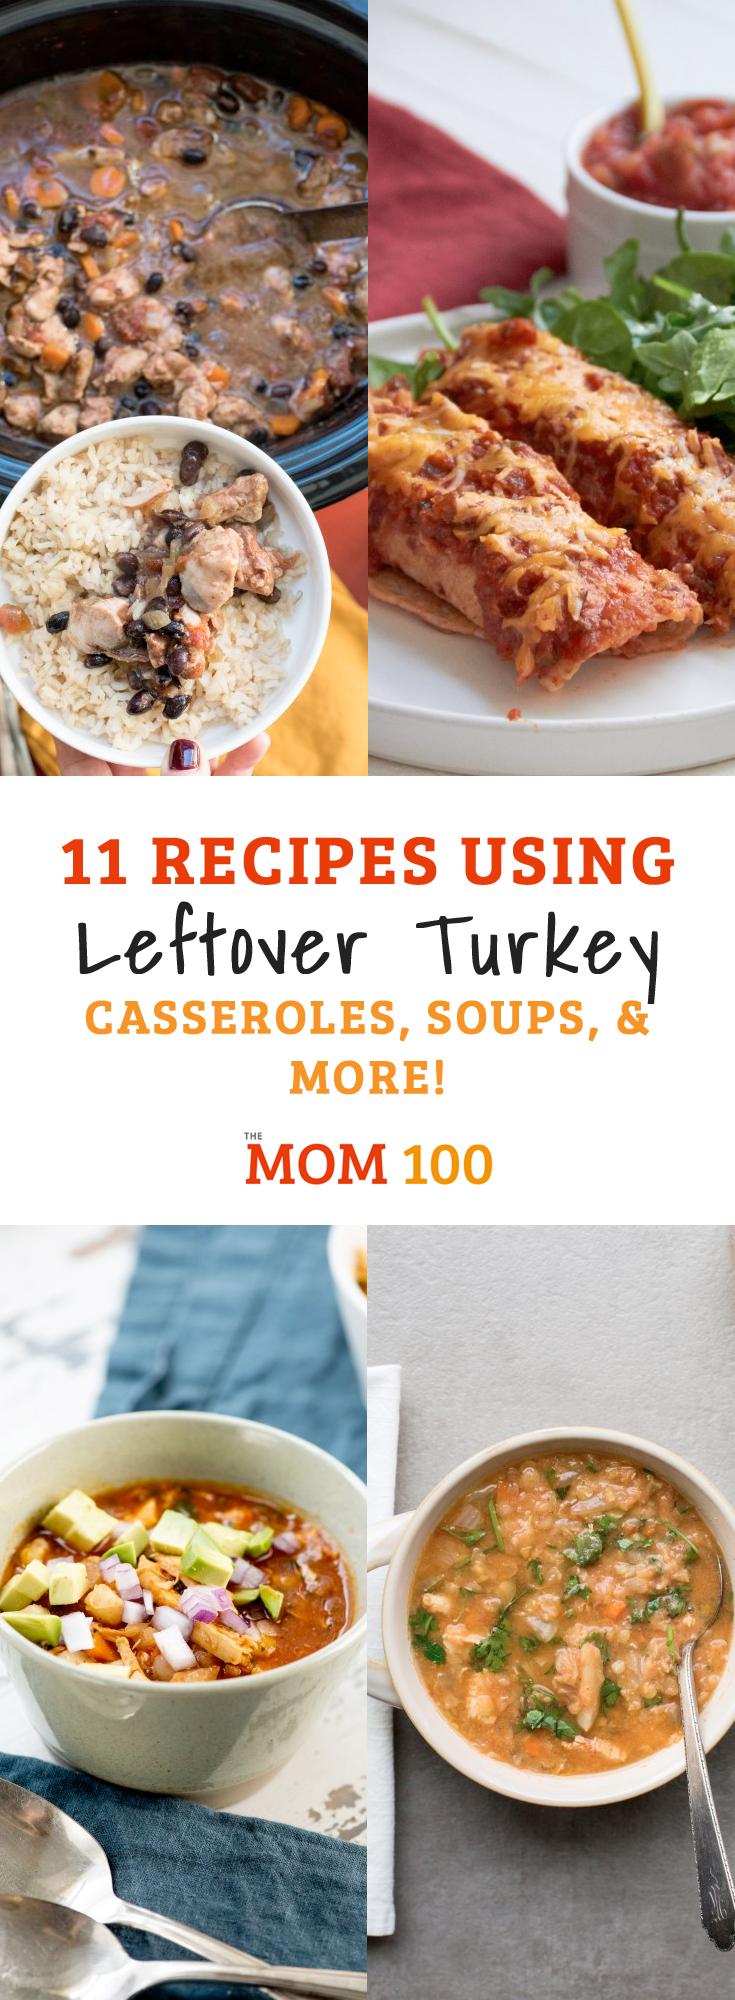 Thanksgiving is like the Olympics of leftover repurposing. Here are 11 Casseroles, Soups (and More) Recipes using leftover turkey.